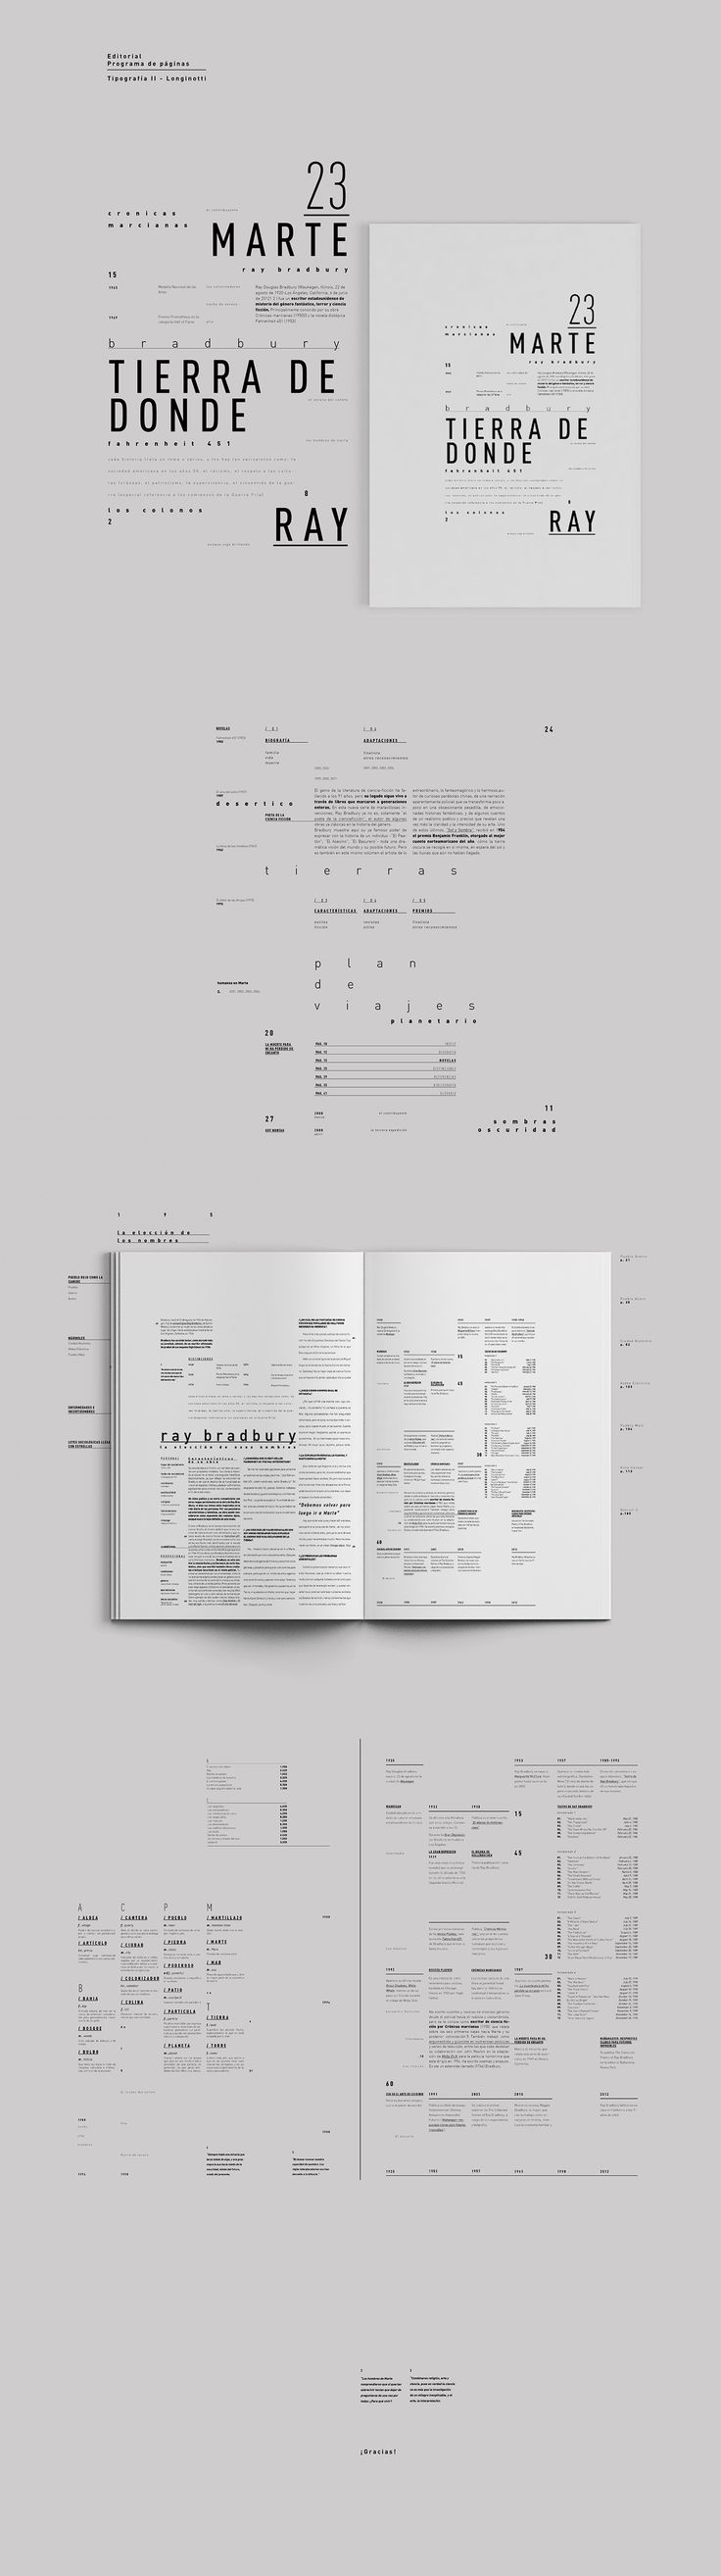 442 best EDITORIAL / LAYOUT DESIGN images on Pinterest | Page layout ...